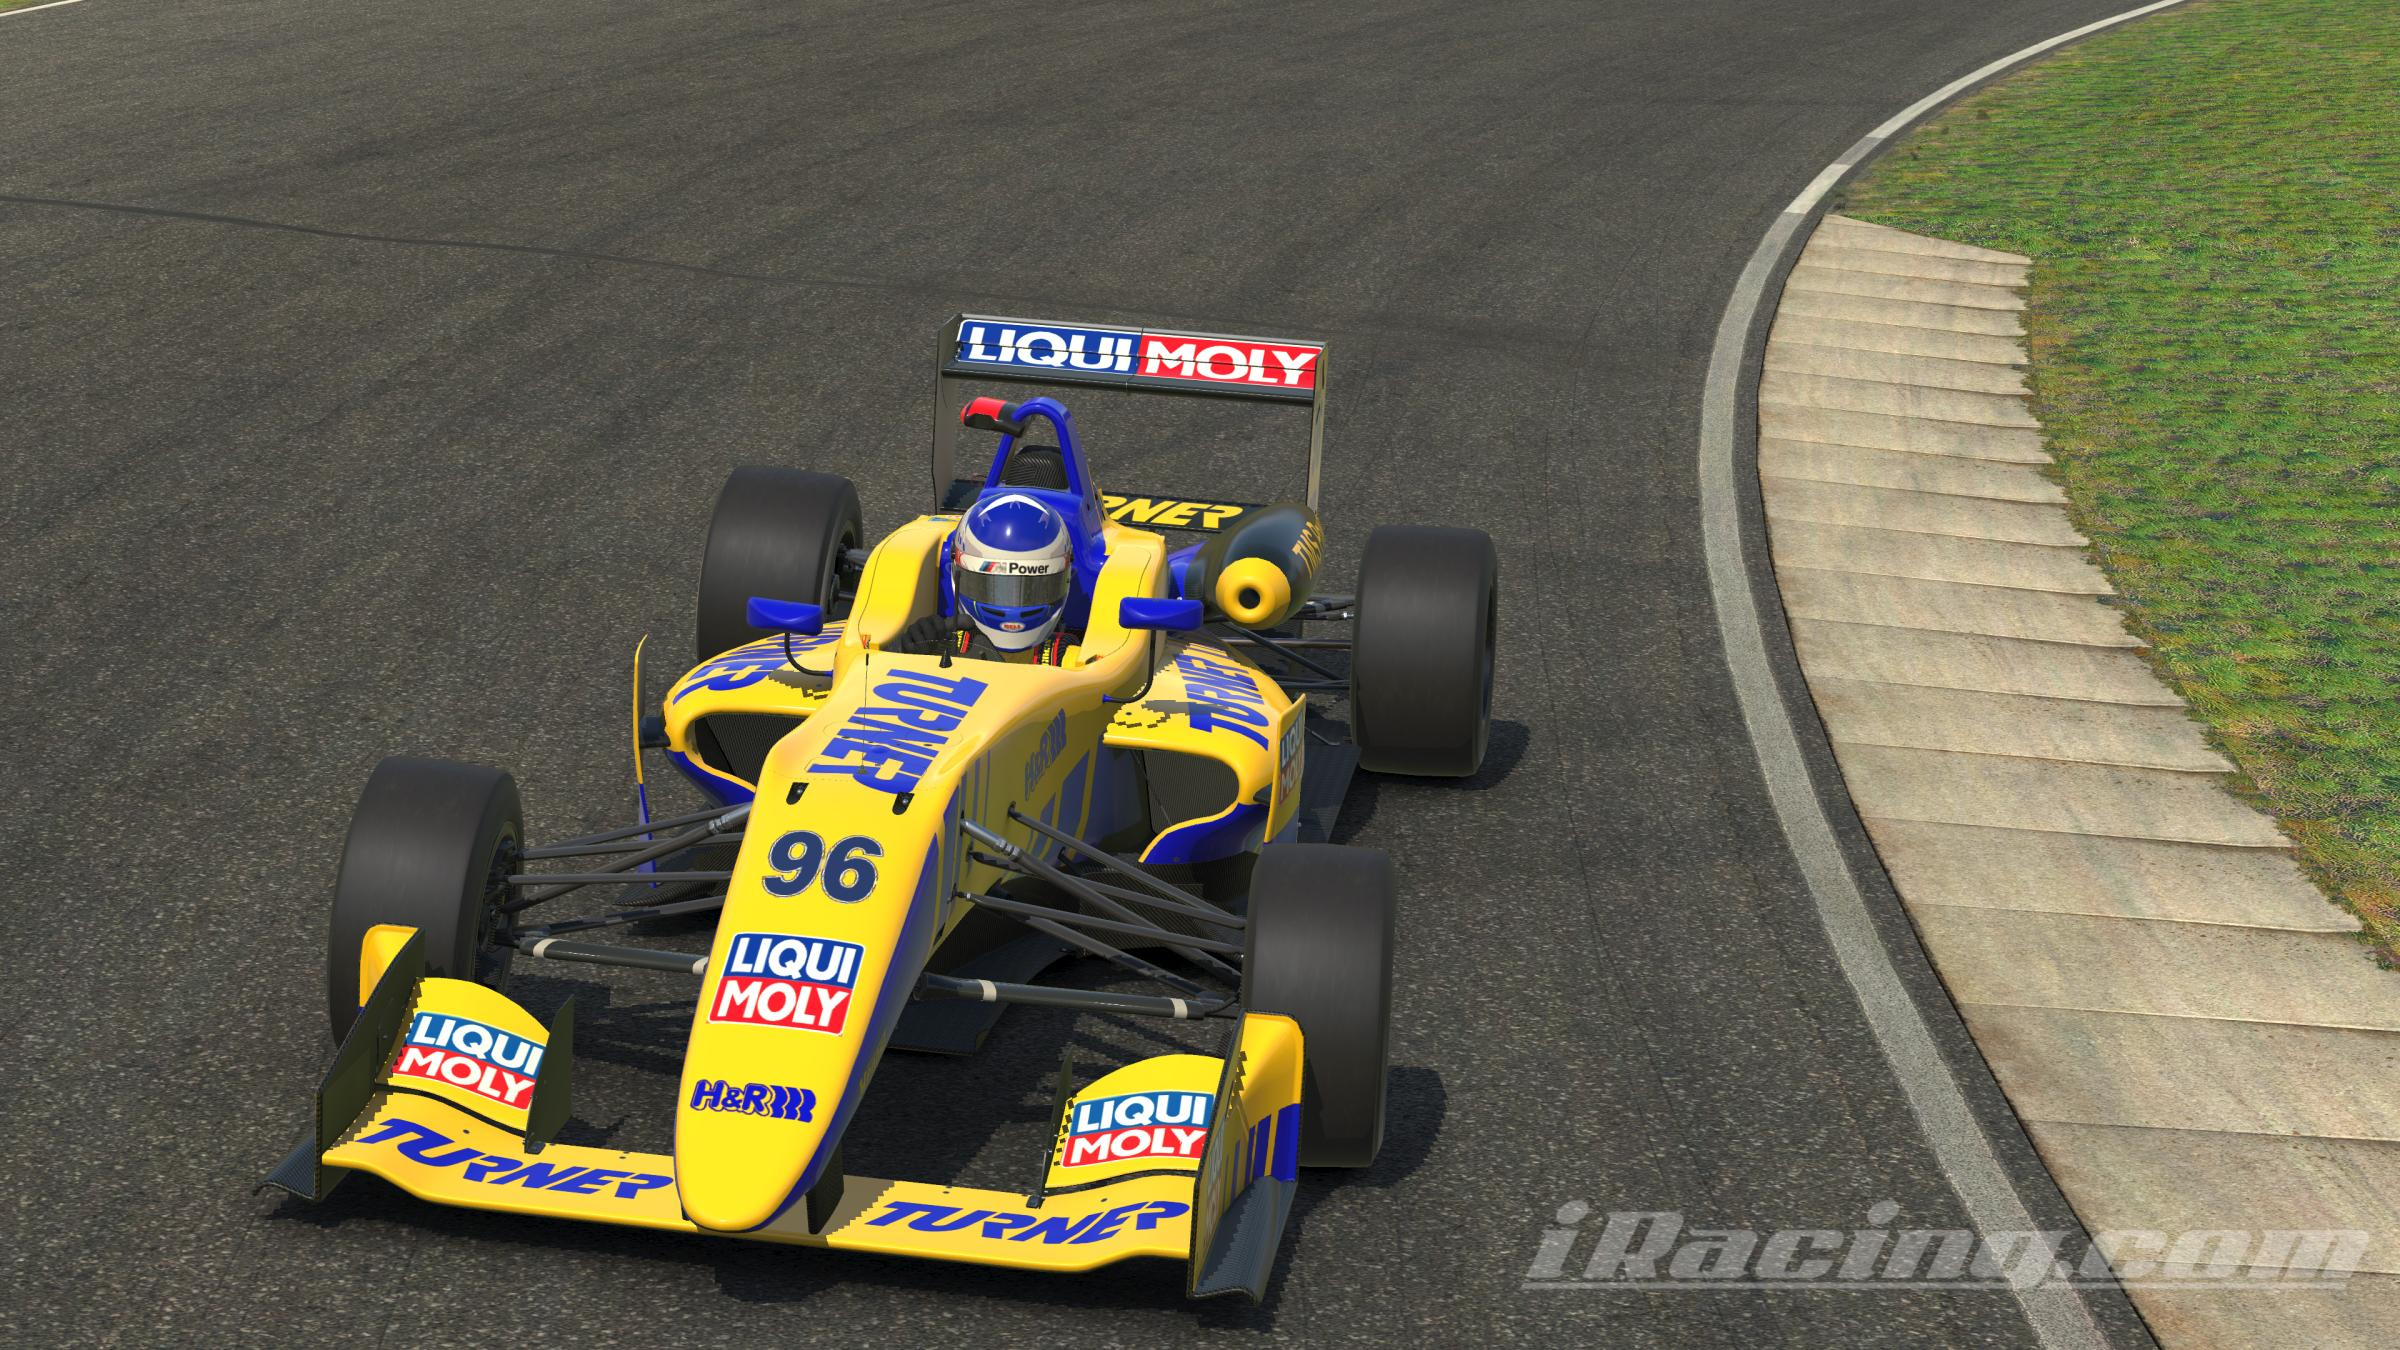 Preview of Dallara F312 F3 - TURNER MOTORSPORT by Andrew Blackmore